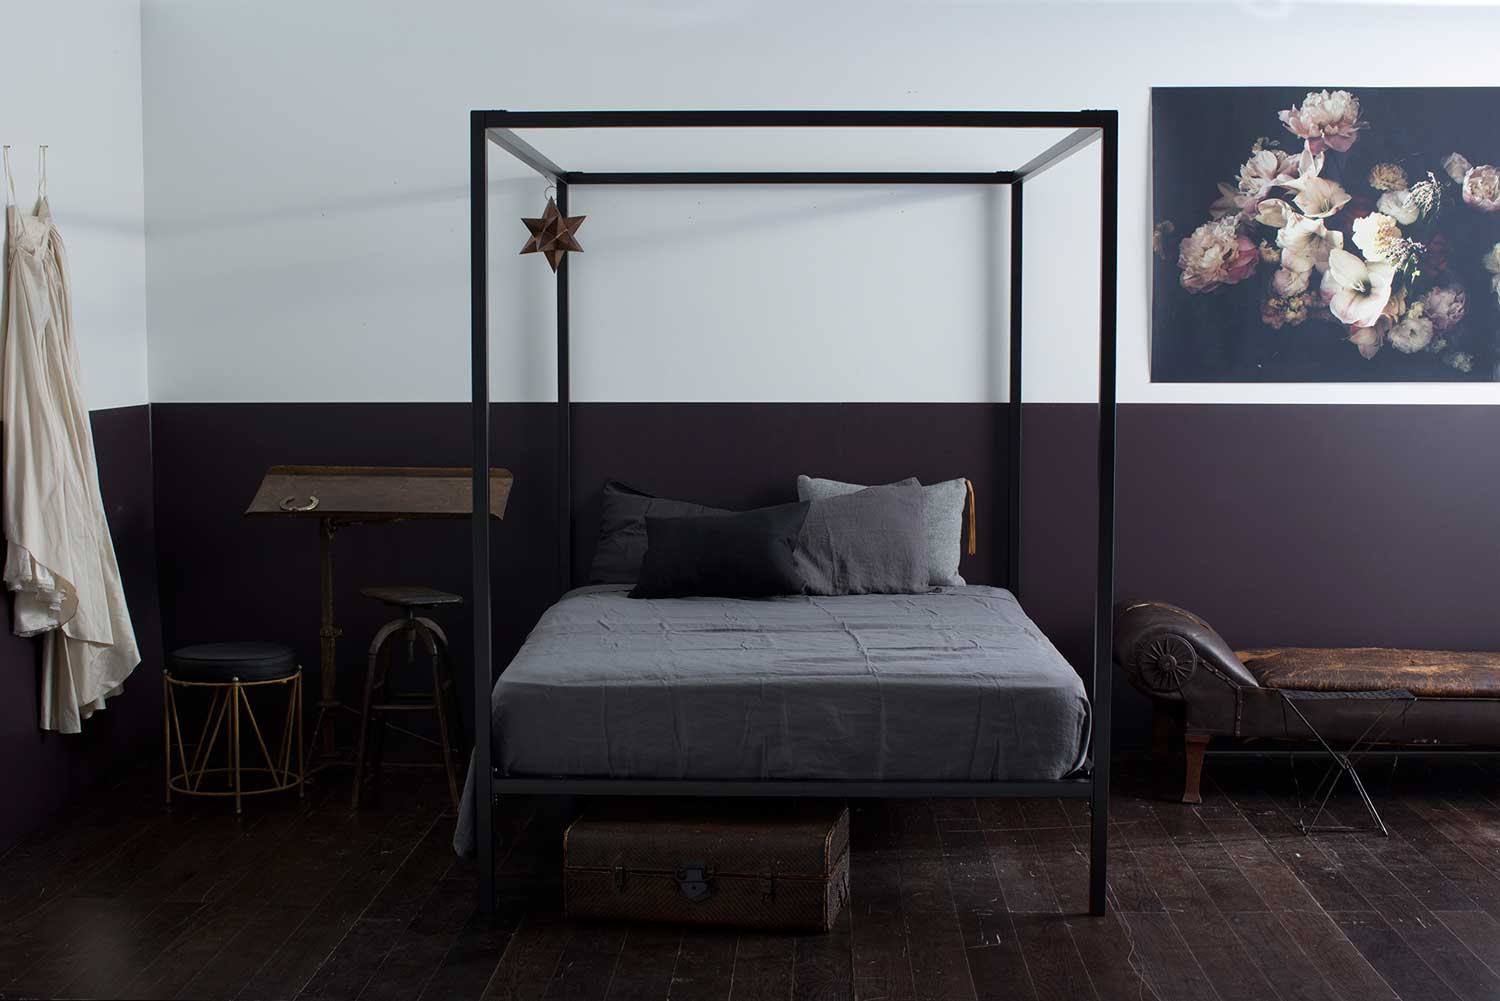 4 Poster Bed Melbourne Australian Design News September 2014 Yellowtrace